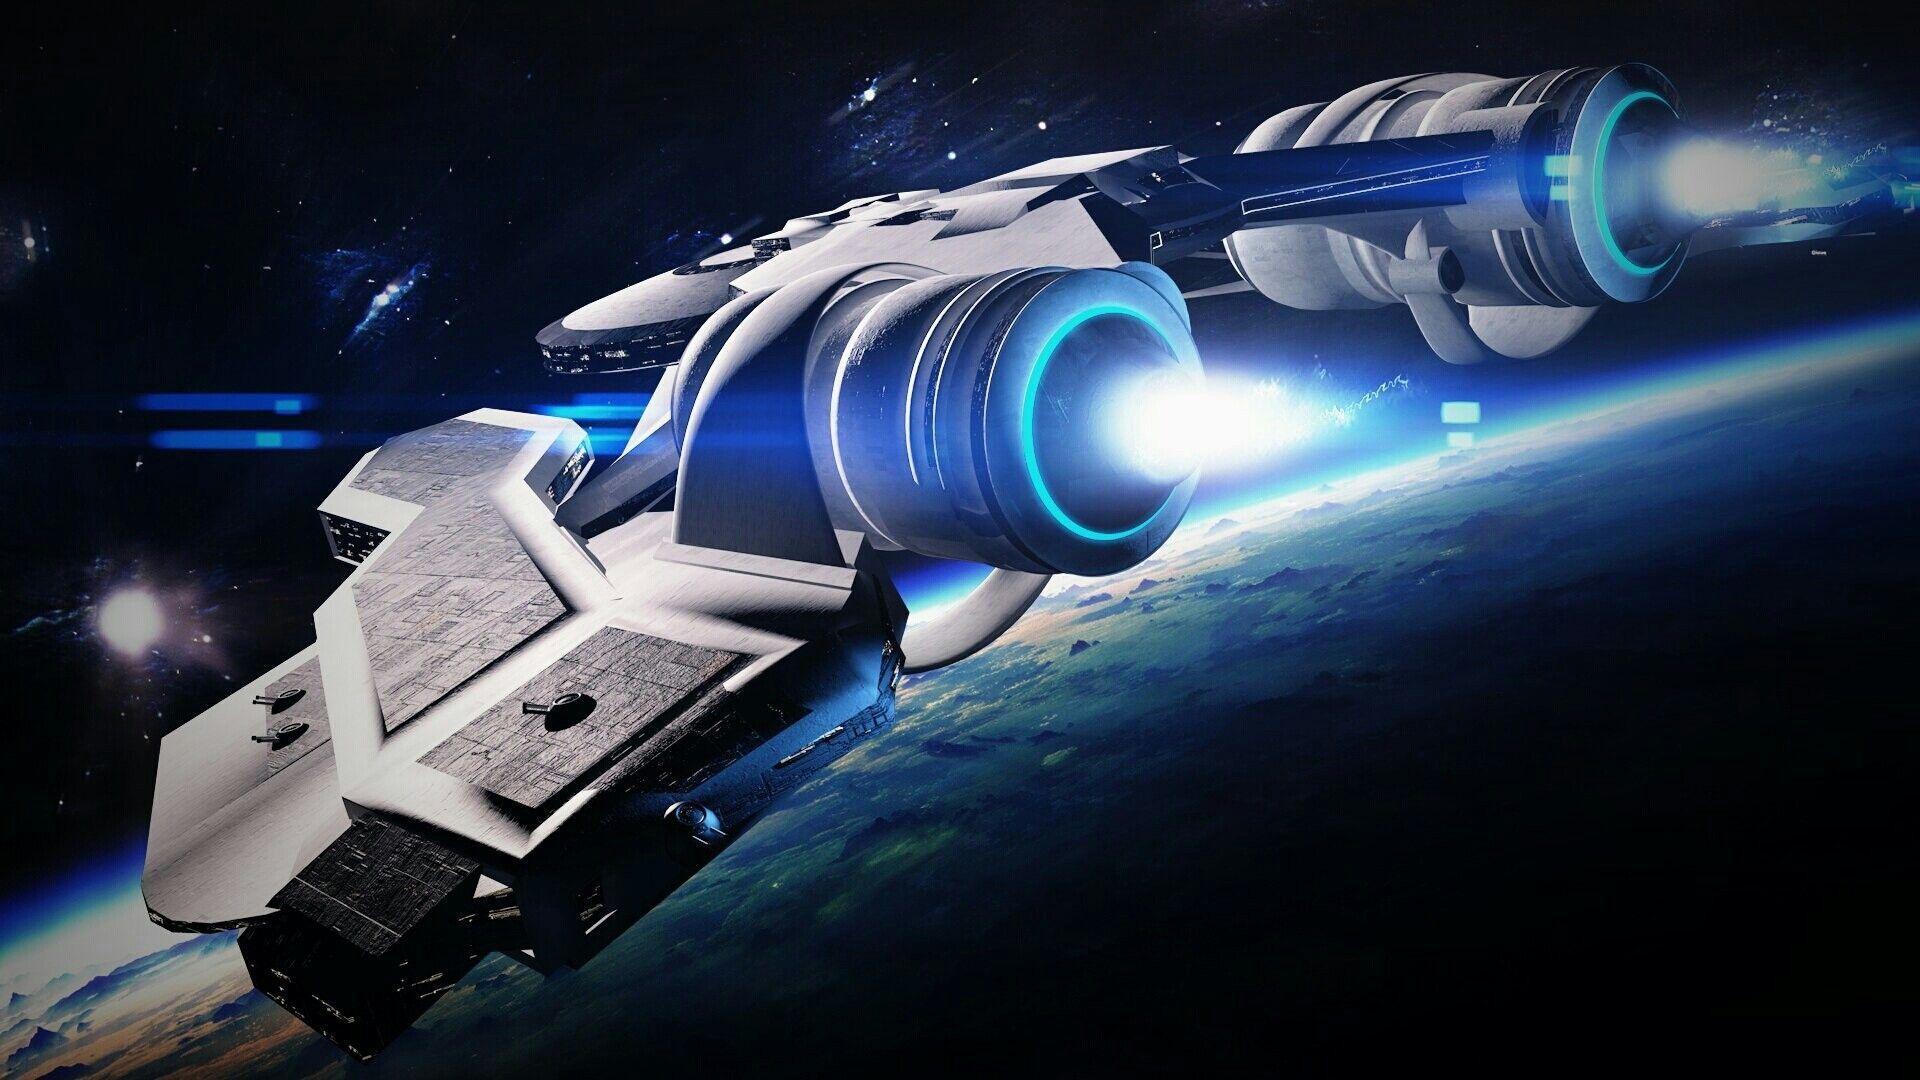 Spaceship Wallpapers, Gorgeous Wallpapers